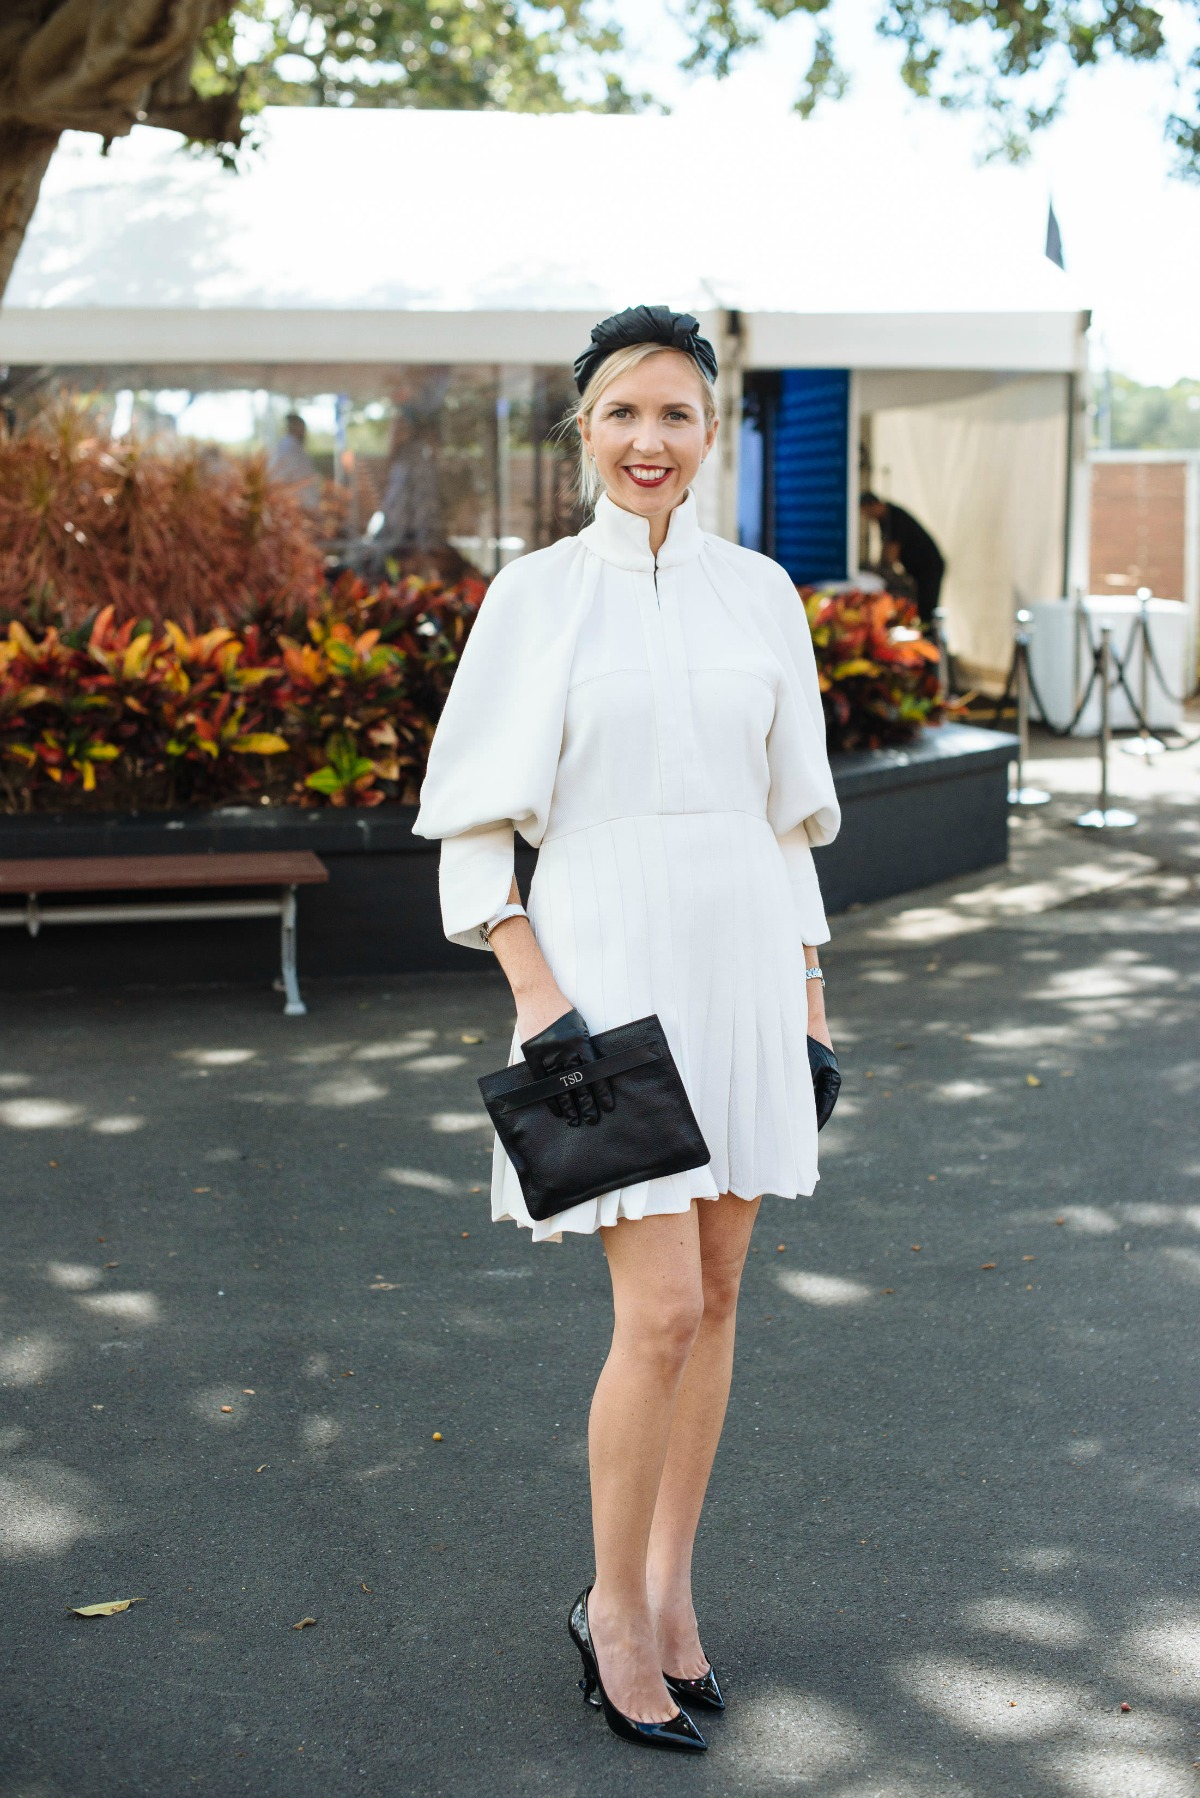 winner of the fashion chute kash o'hara's autumn racing outfit